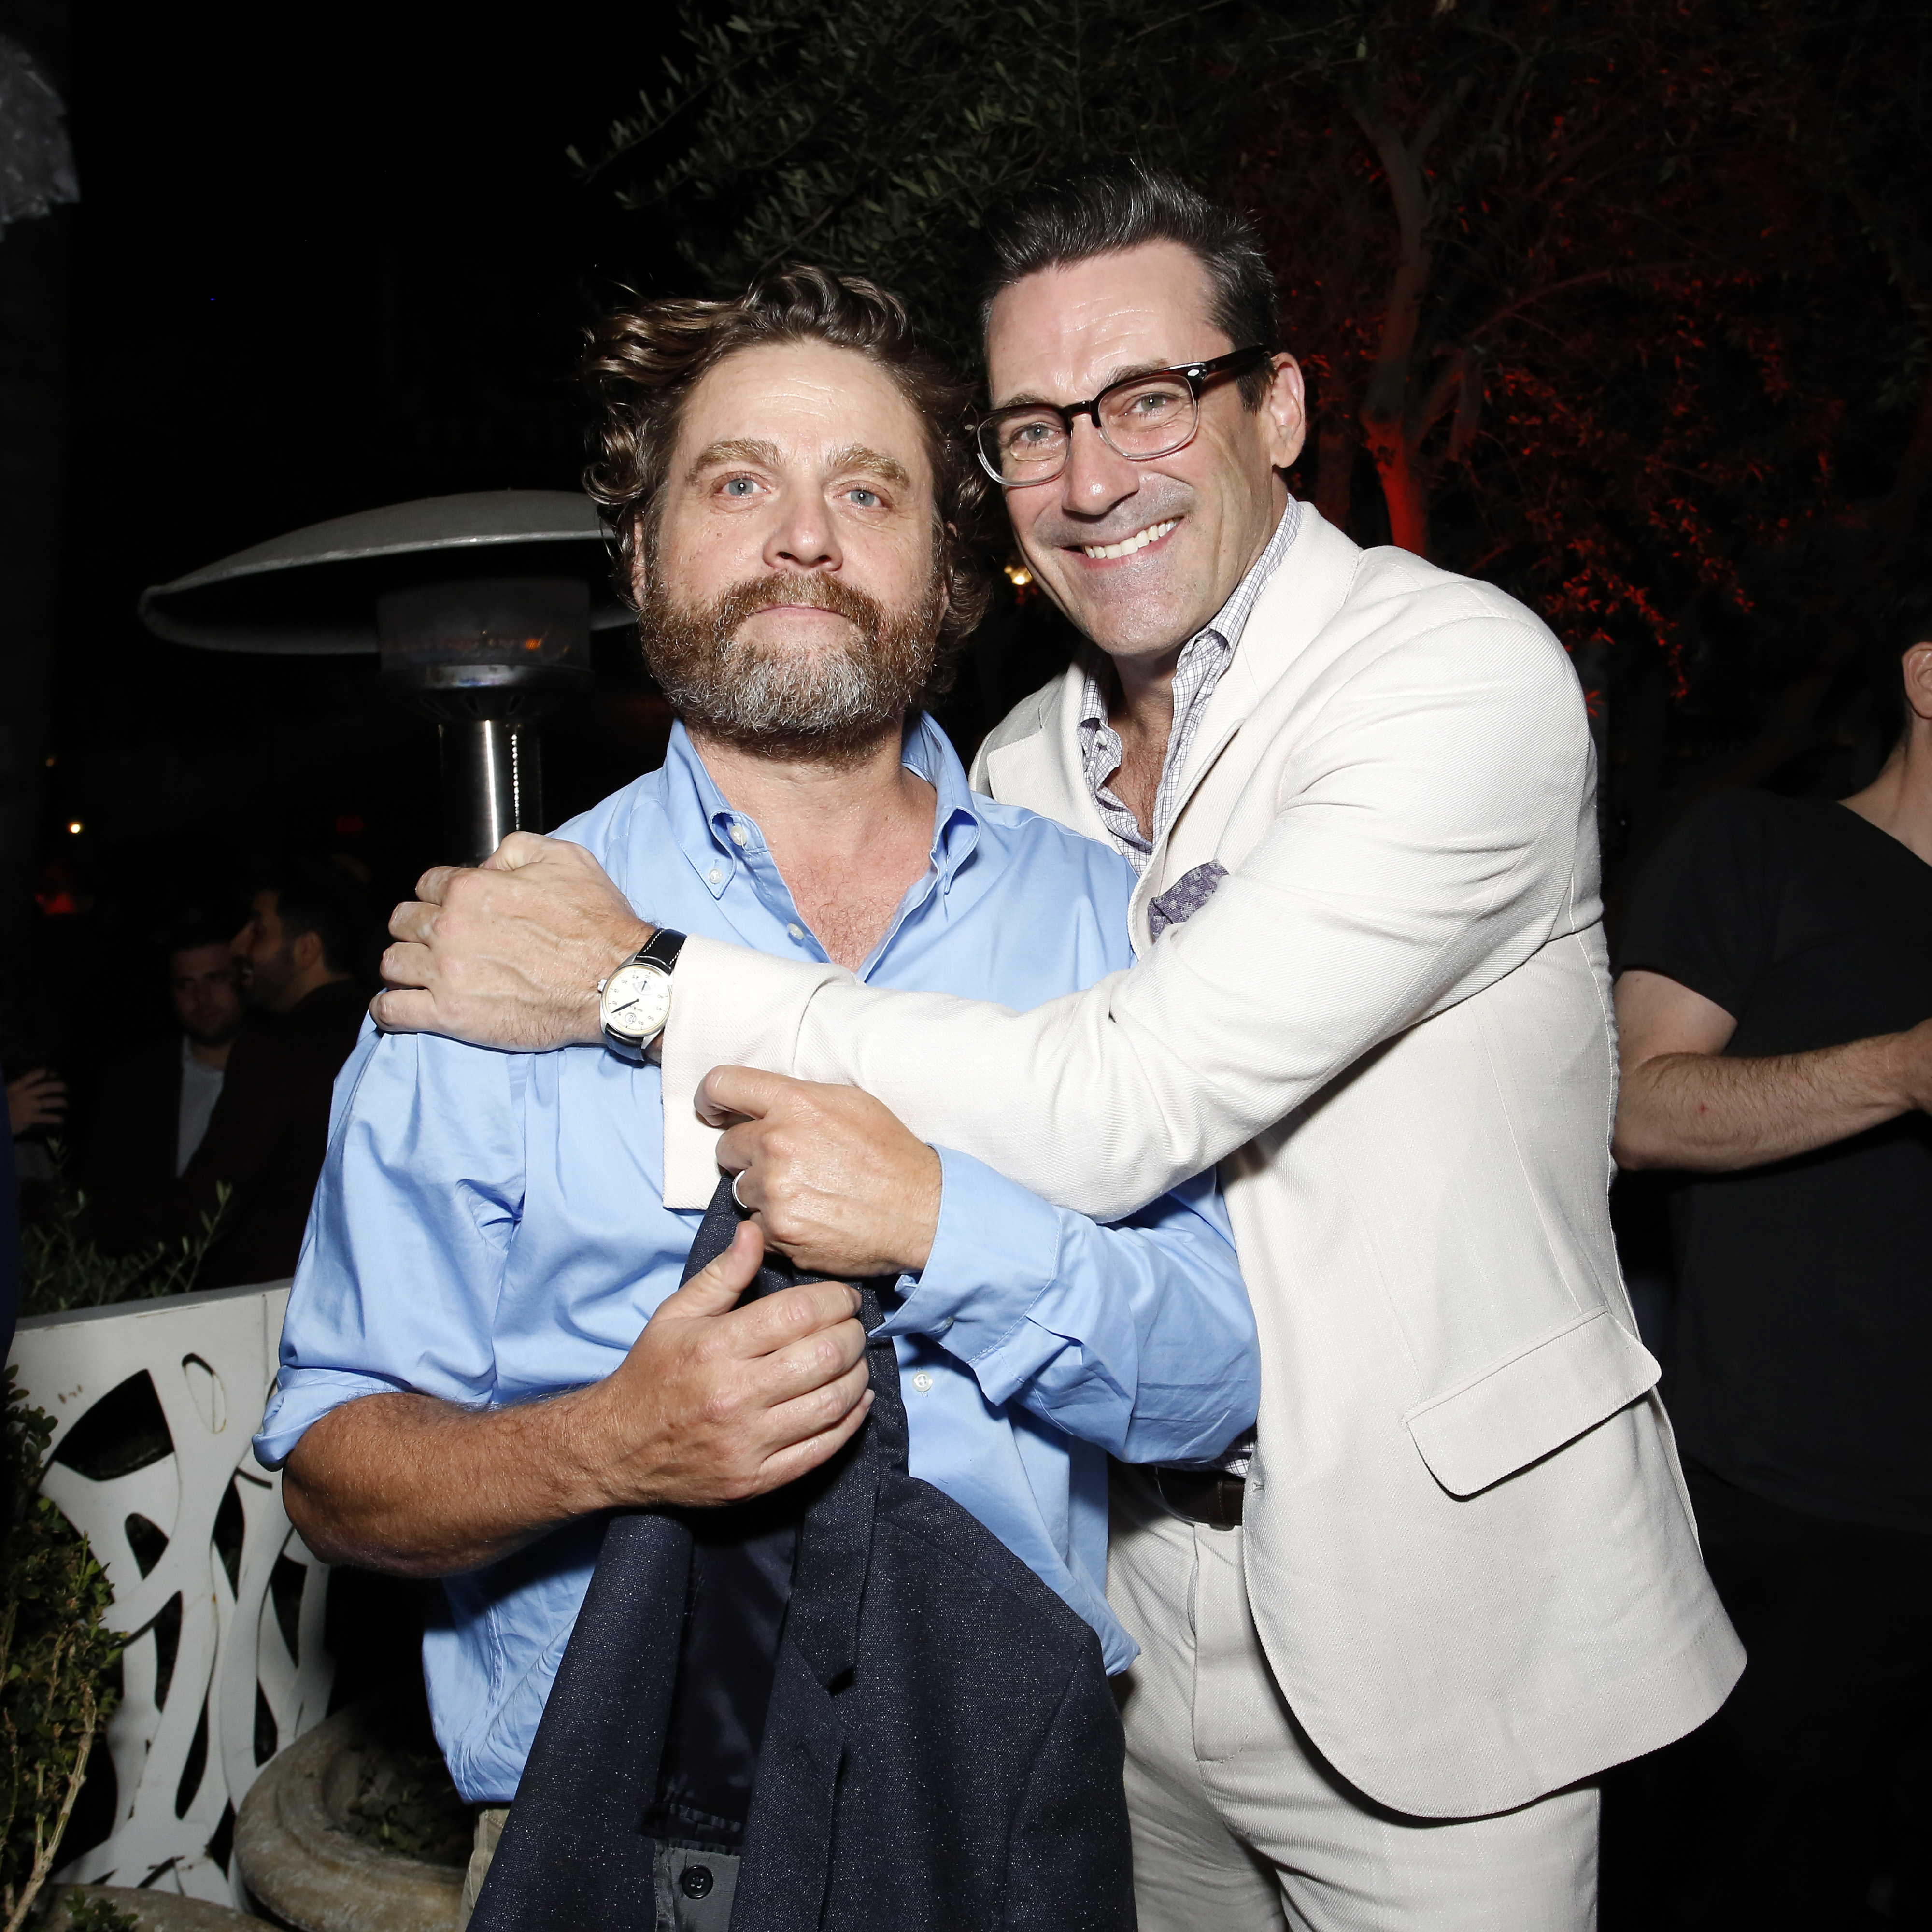 Zach Galifianakis and Jon Hamm at an event for Between Two Ferns: The Movie (2019)